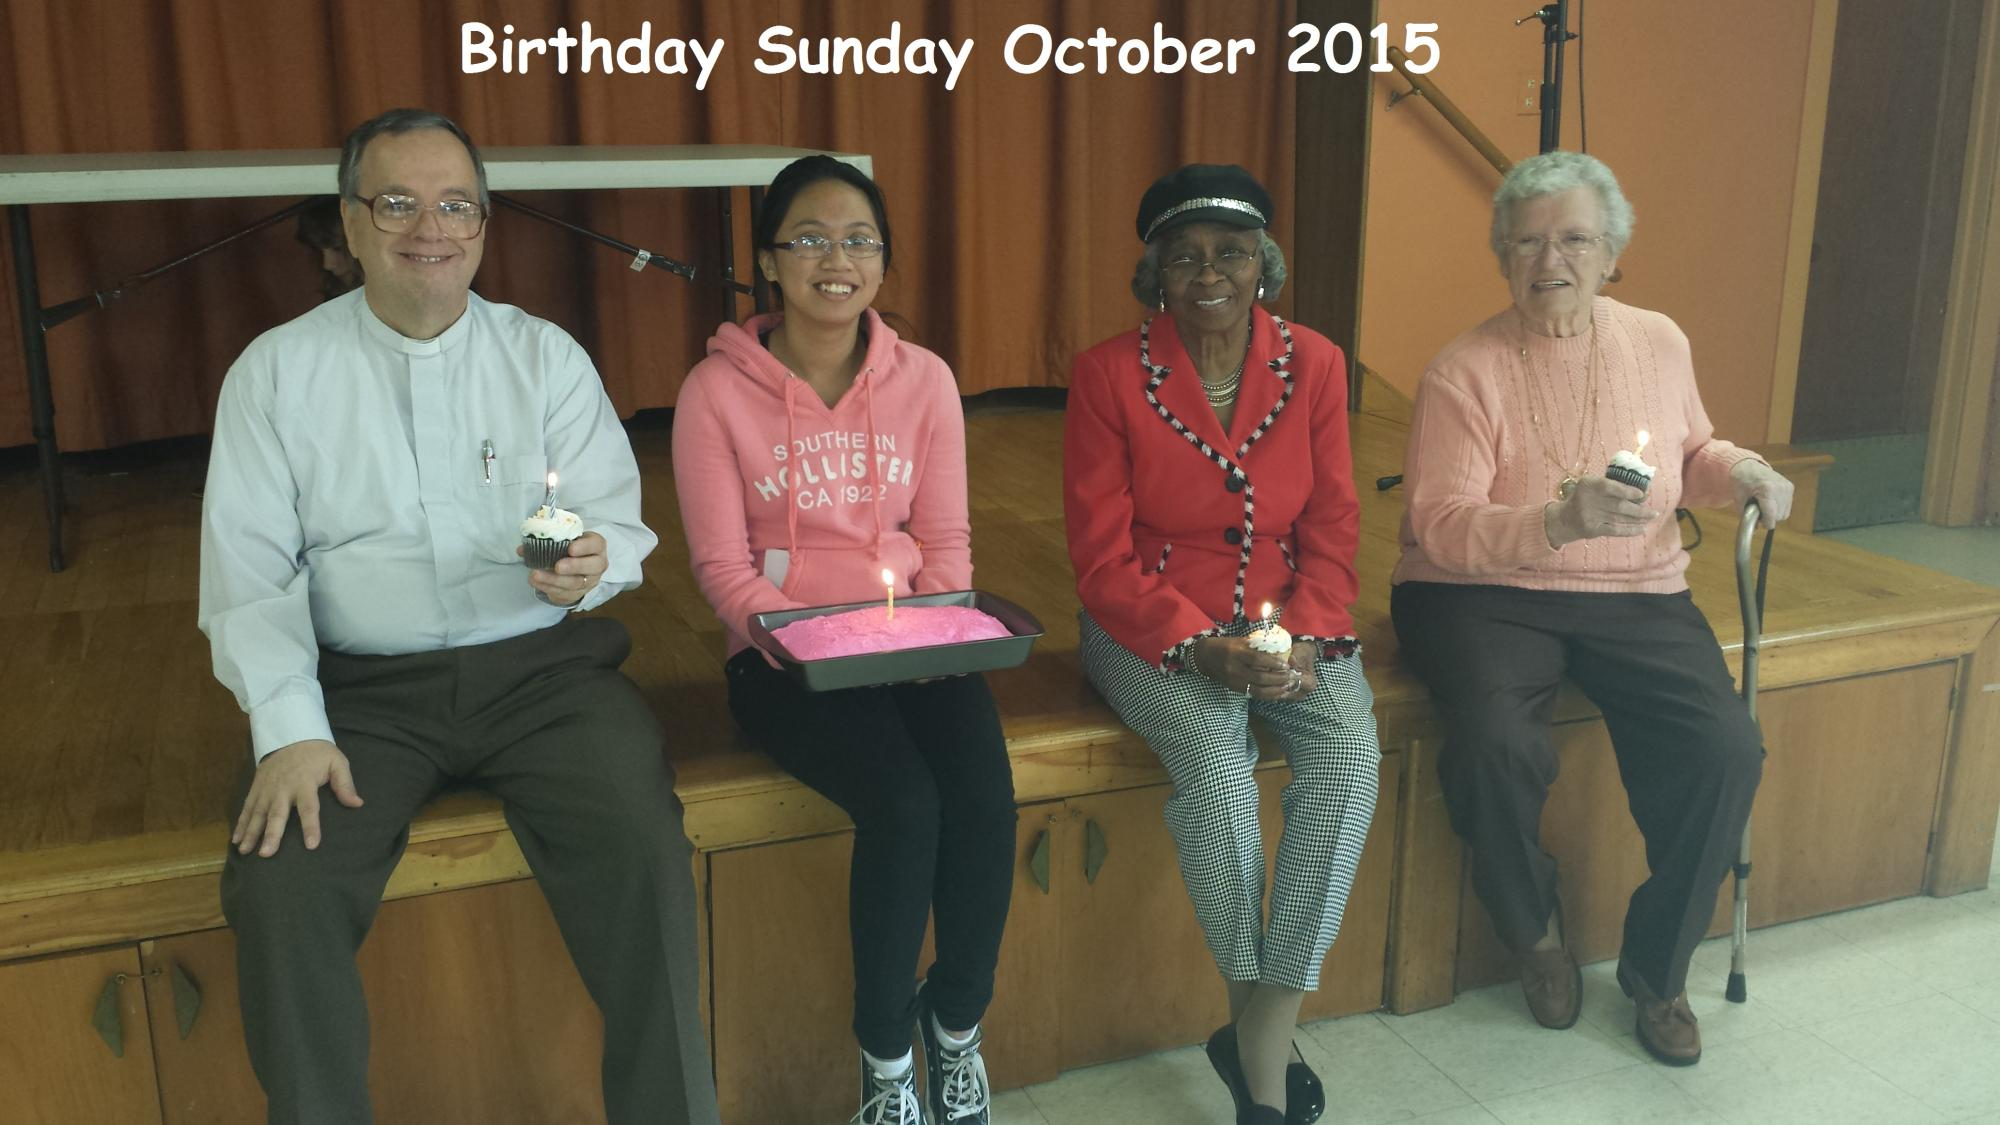 Birthday Sunday October 2015